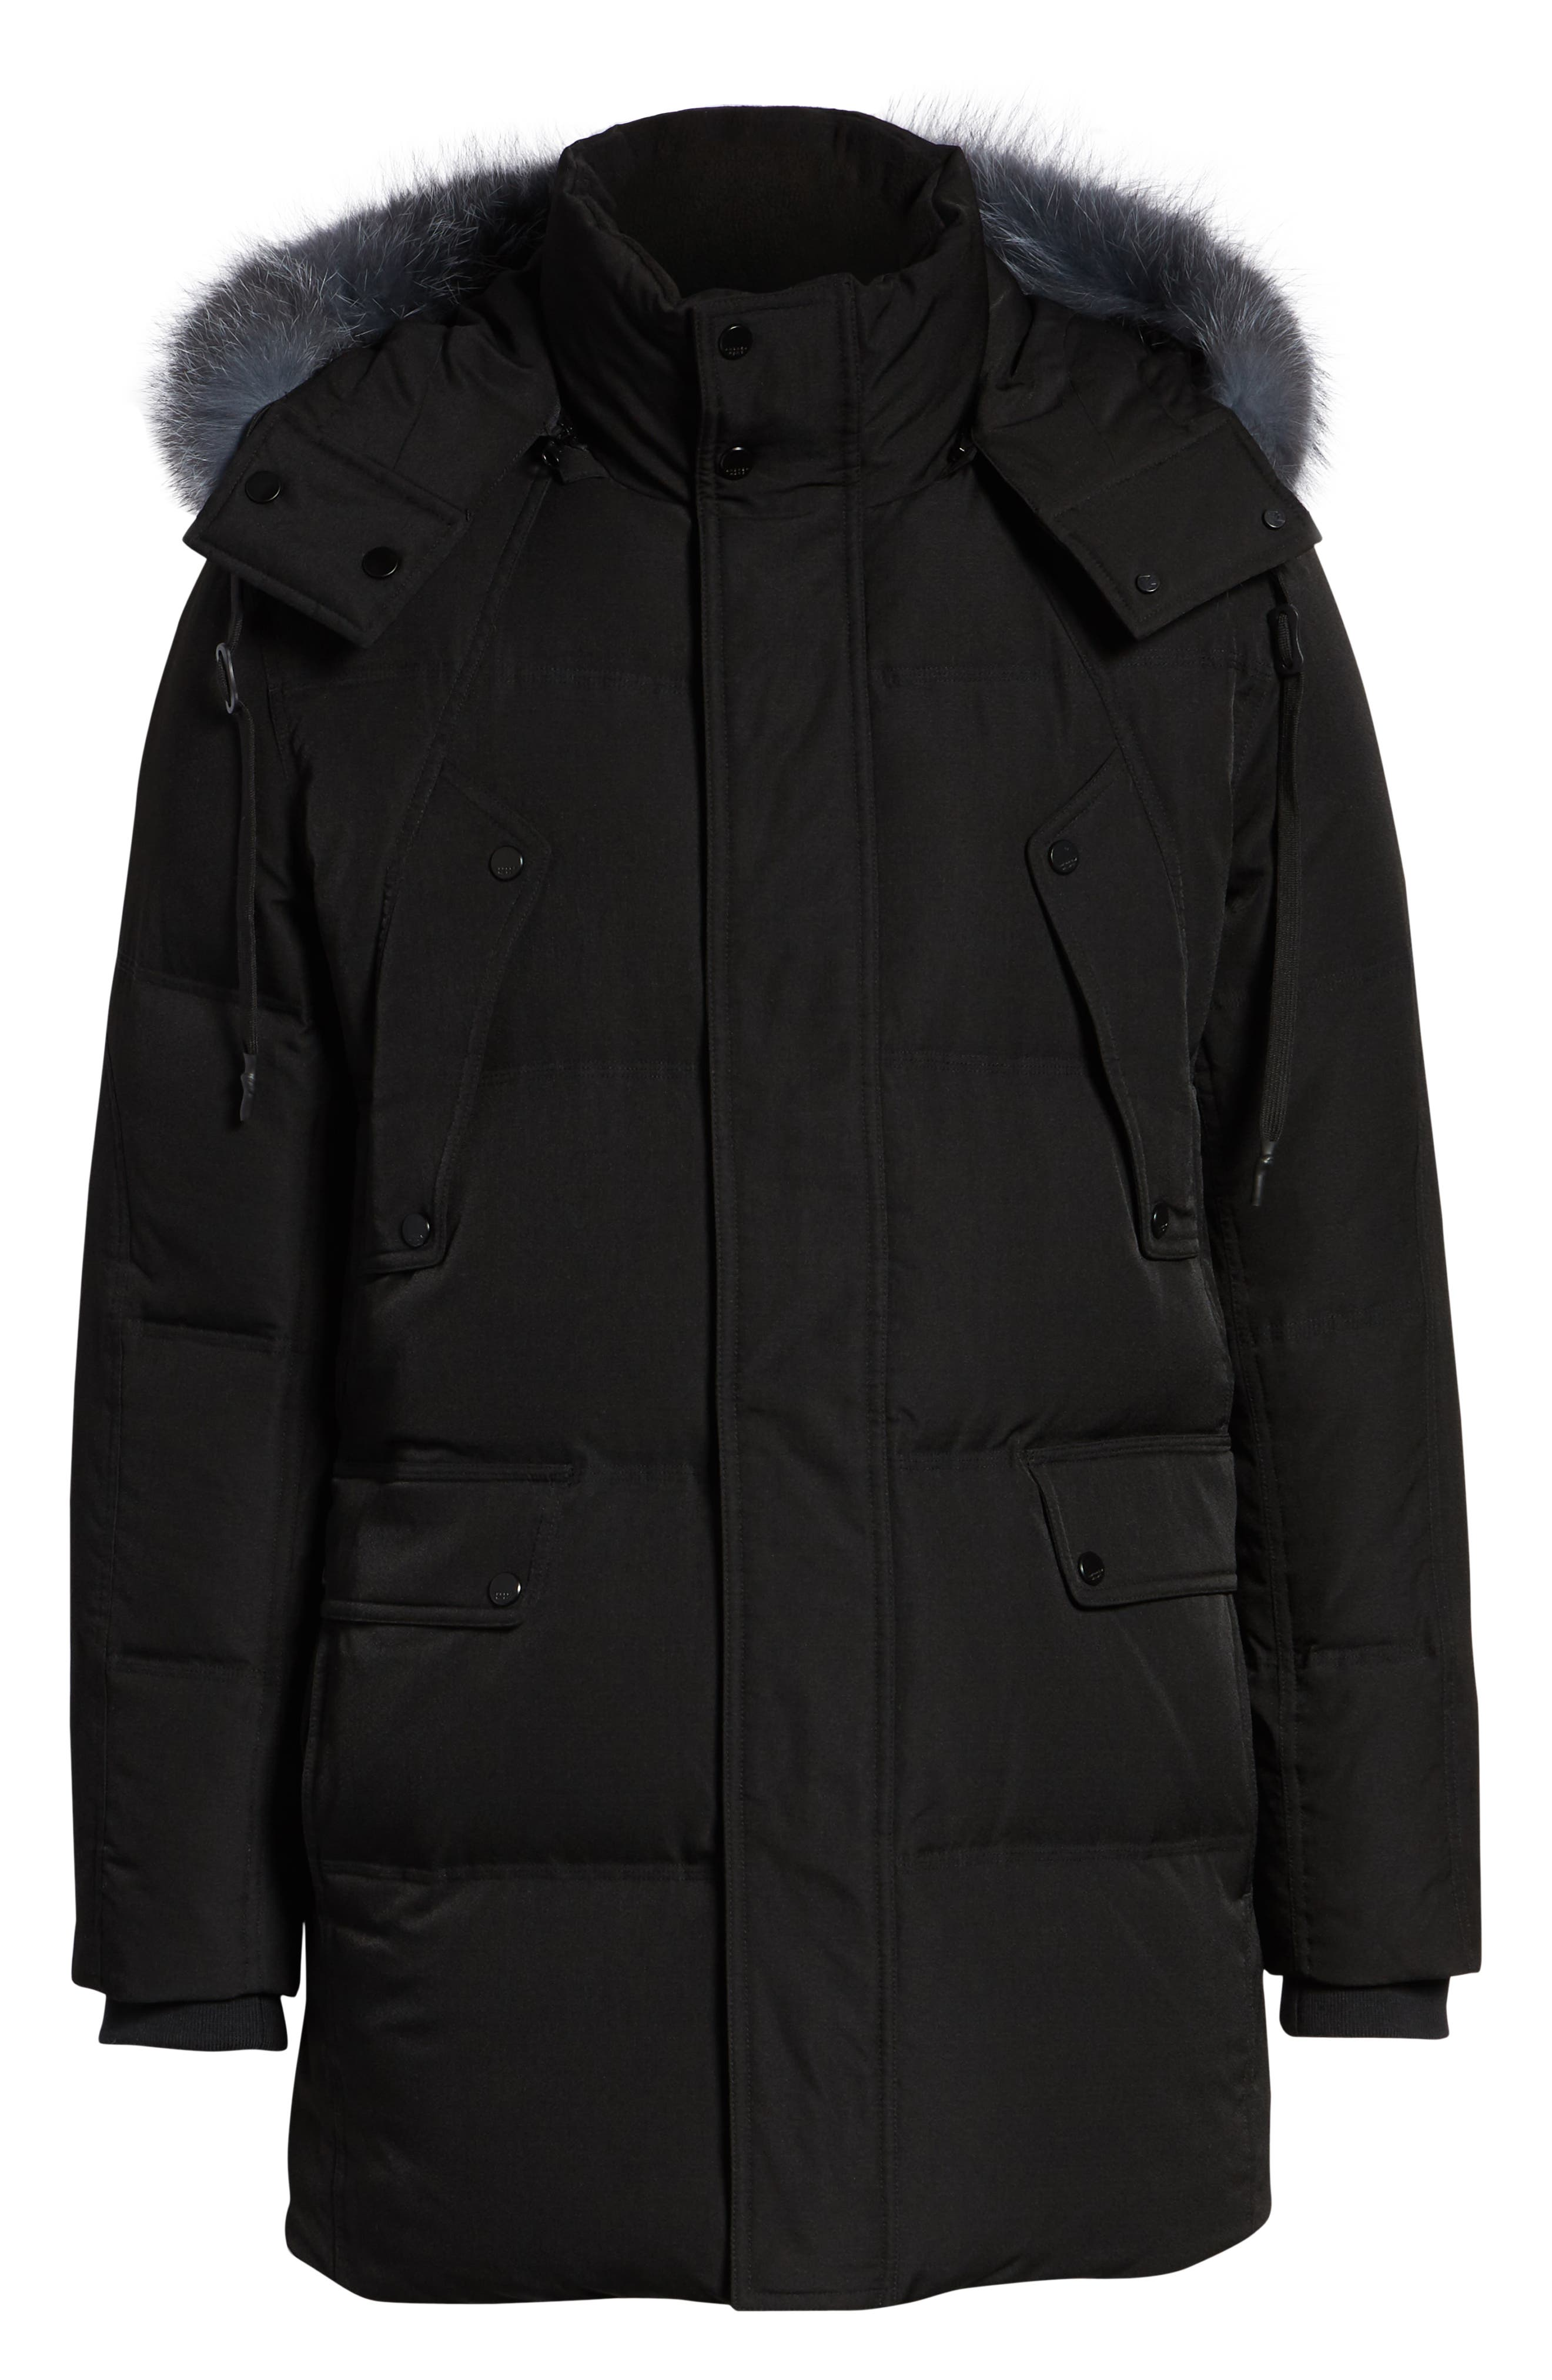 Bohlen Down & Feather Bomber Jacket with Removable Genuine Coyote Fur Trim Hood,                             Alternate thumbnail 6, color,                             BLACK